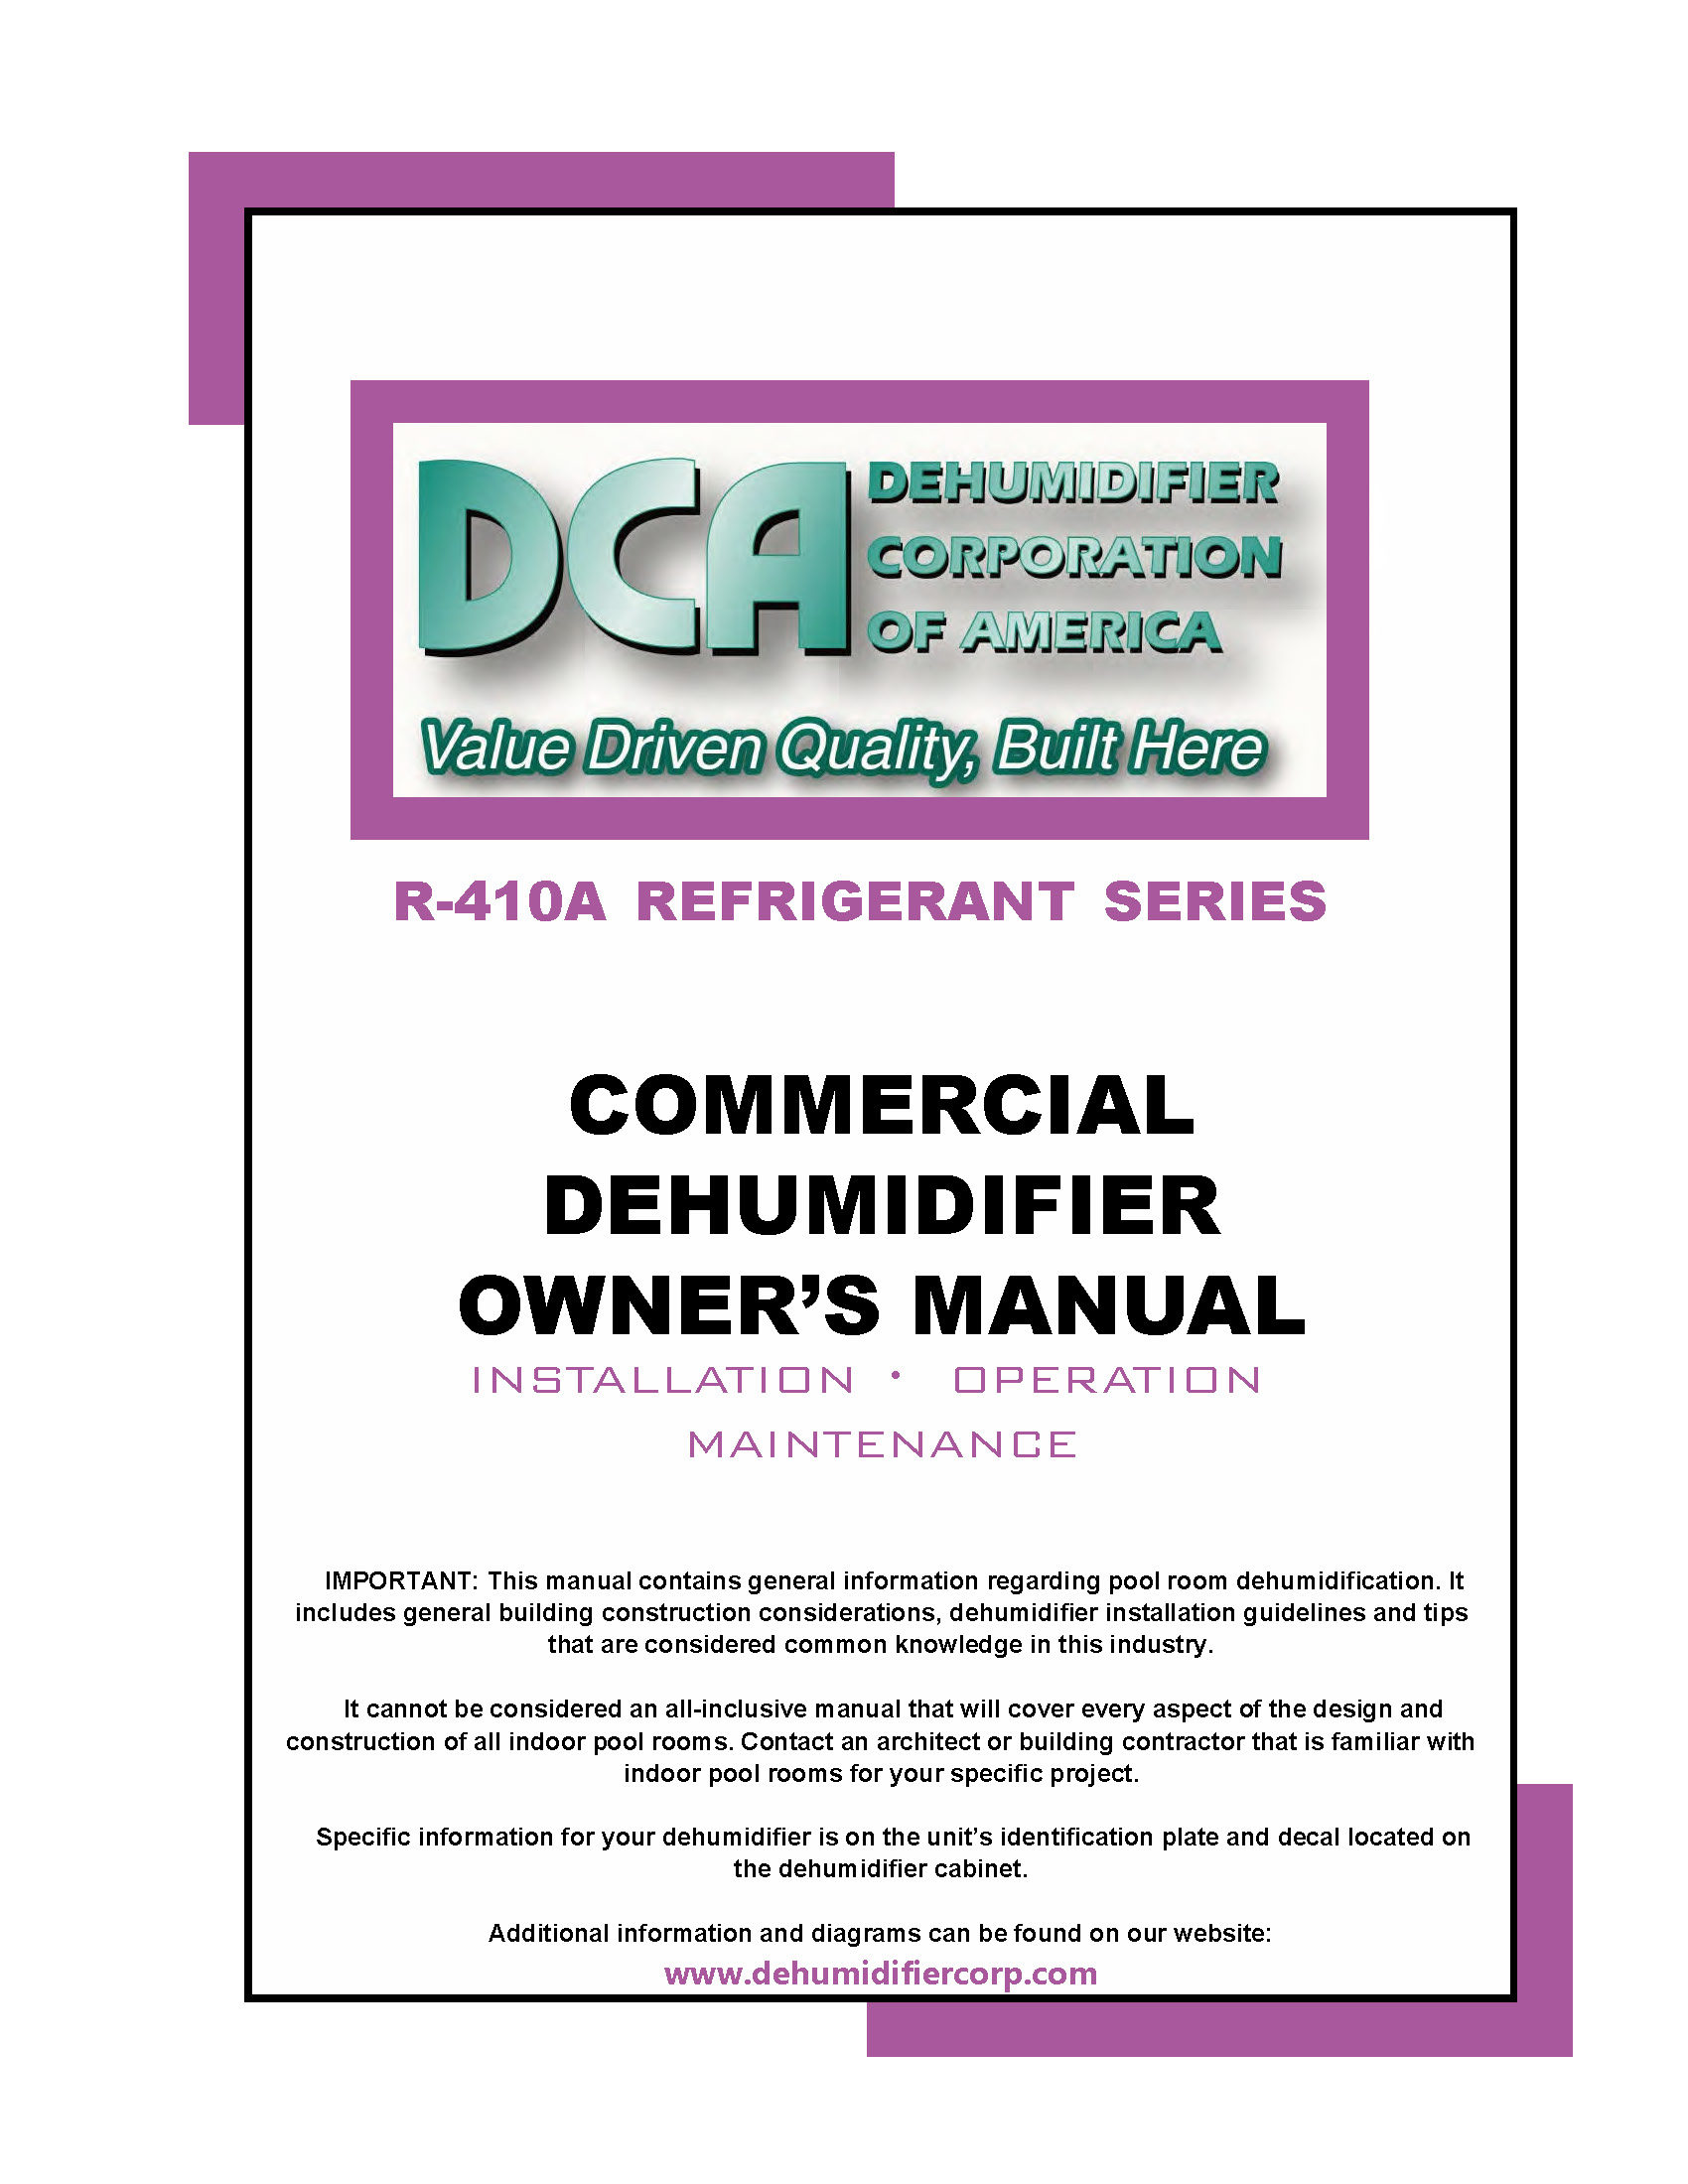 Commercial Dehumidifier Owners Manual 410A